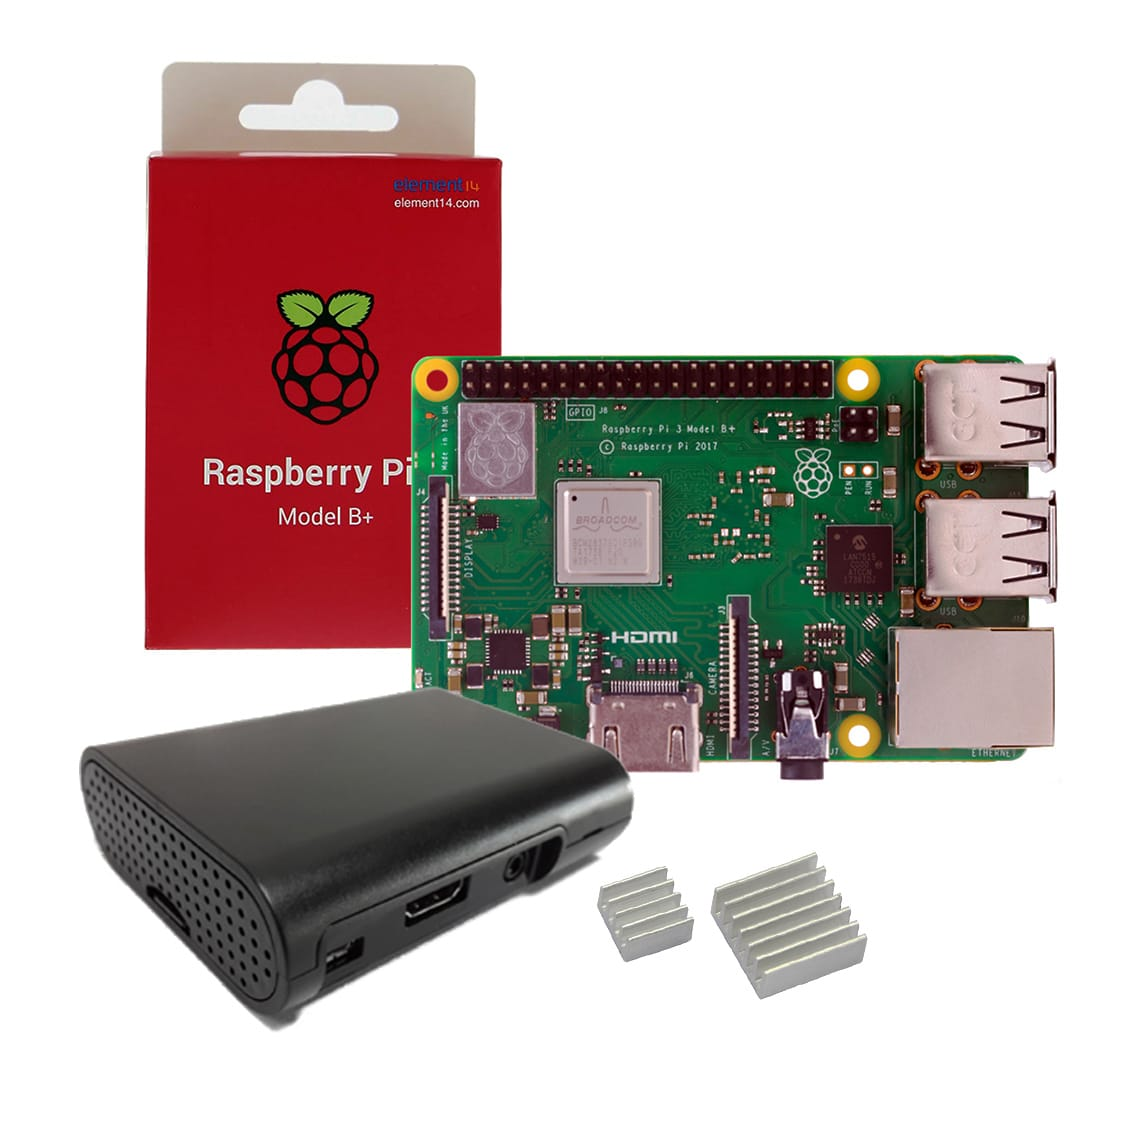 Raspberry Pi 3 Model B+ with Case and Heat Sinks